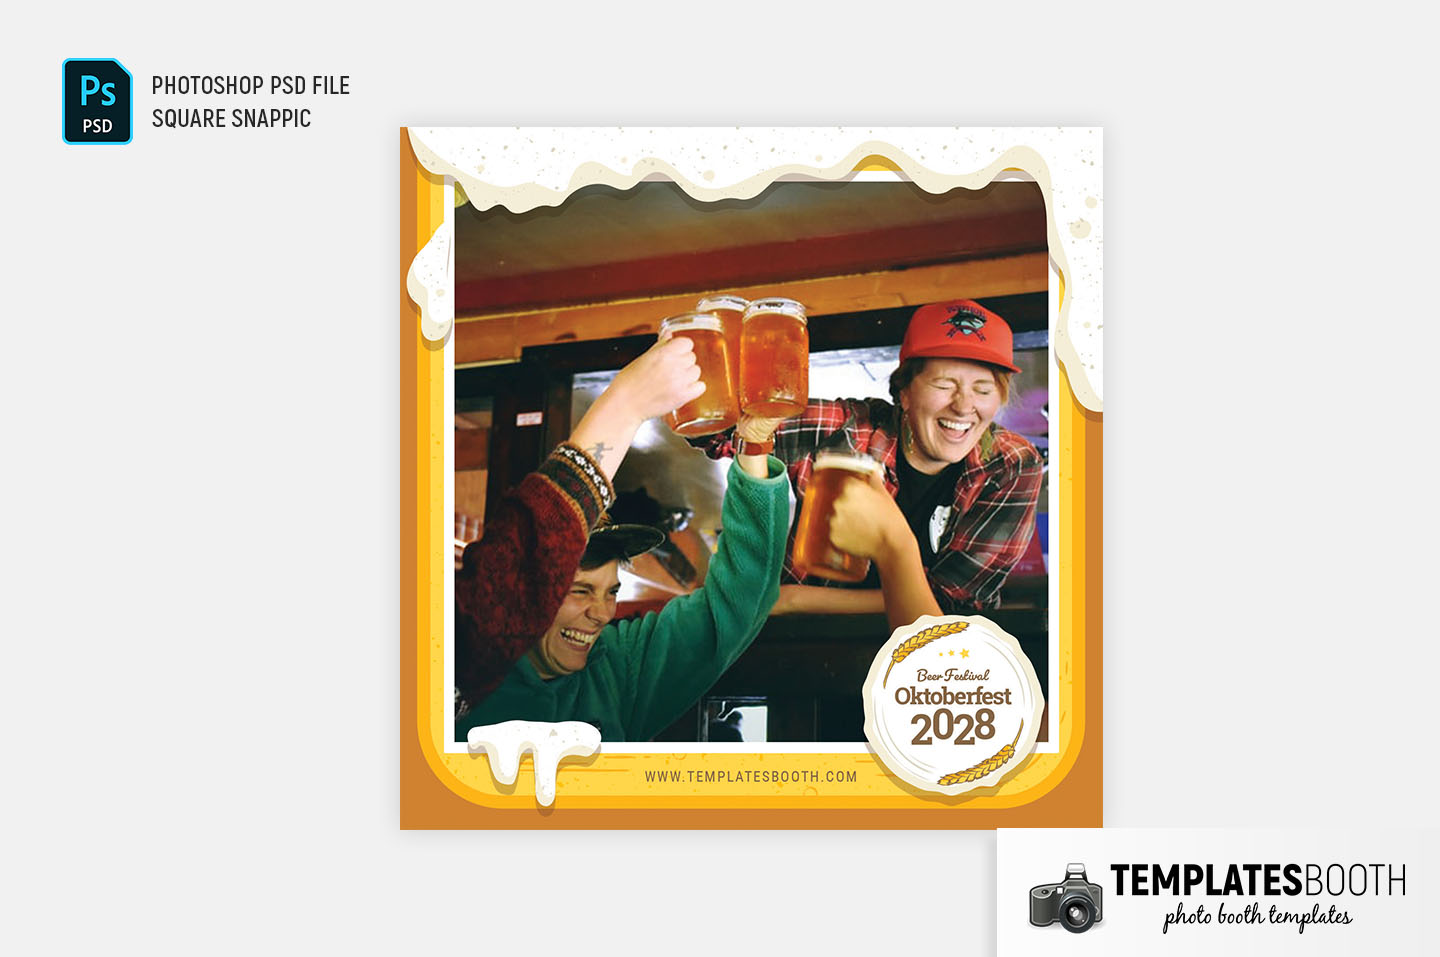 Frothy Beer Oktoberfest Photo Booth Template - PSD, PNG & DSLR Booth